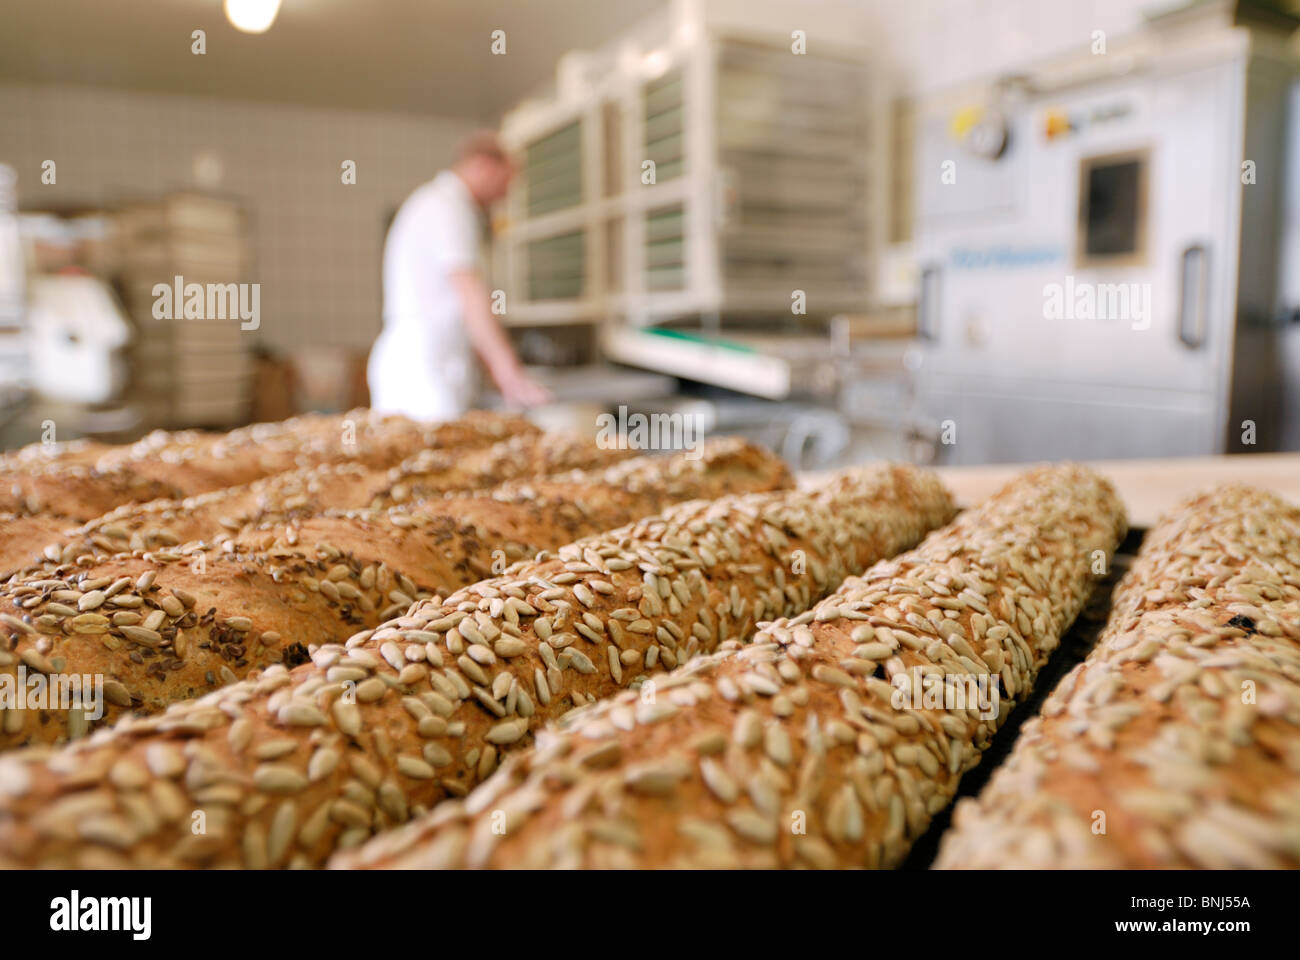 completed bread rolls in front, blurred working baker behind - Stock Image